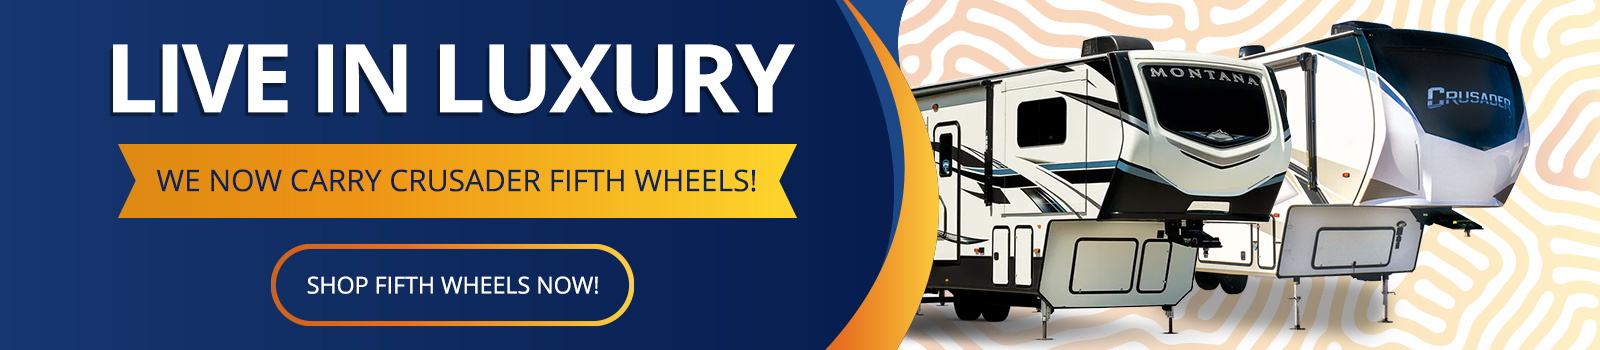 Live in Luxury with our Fifth Wheels